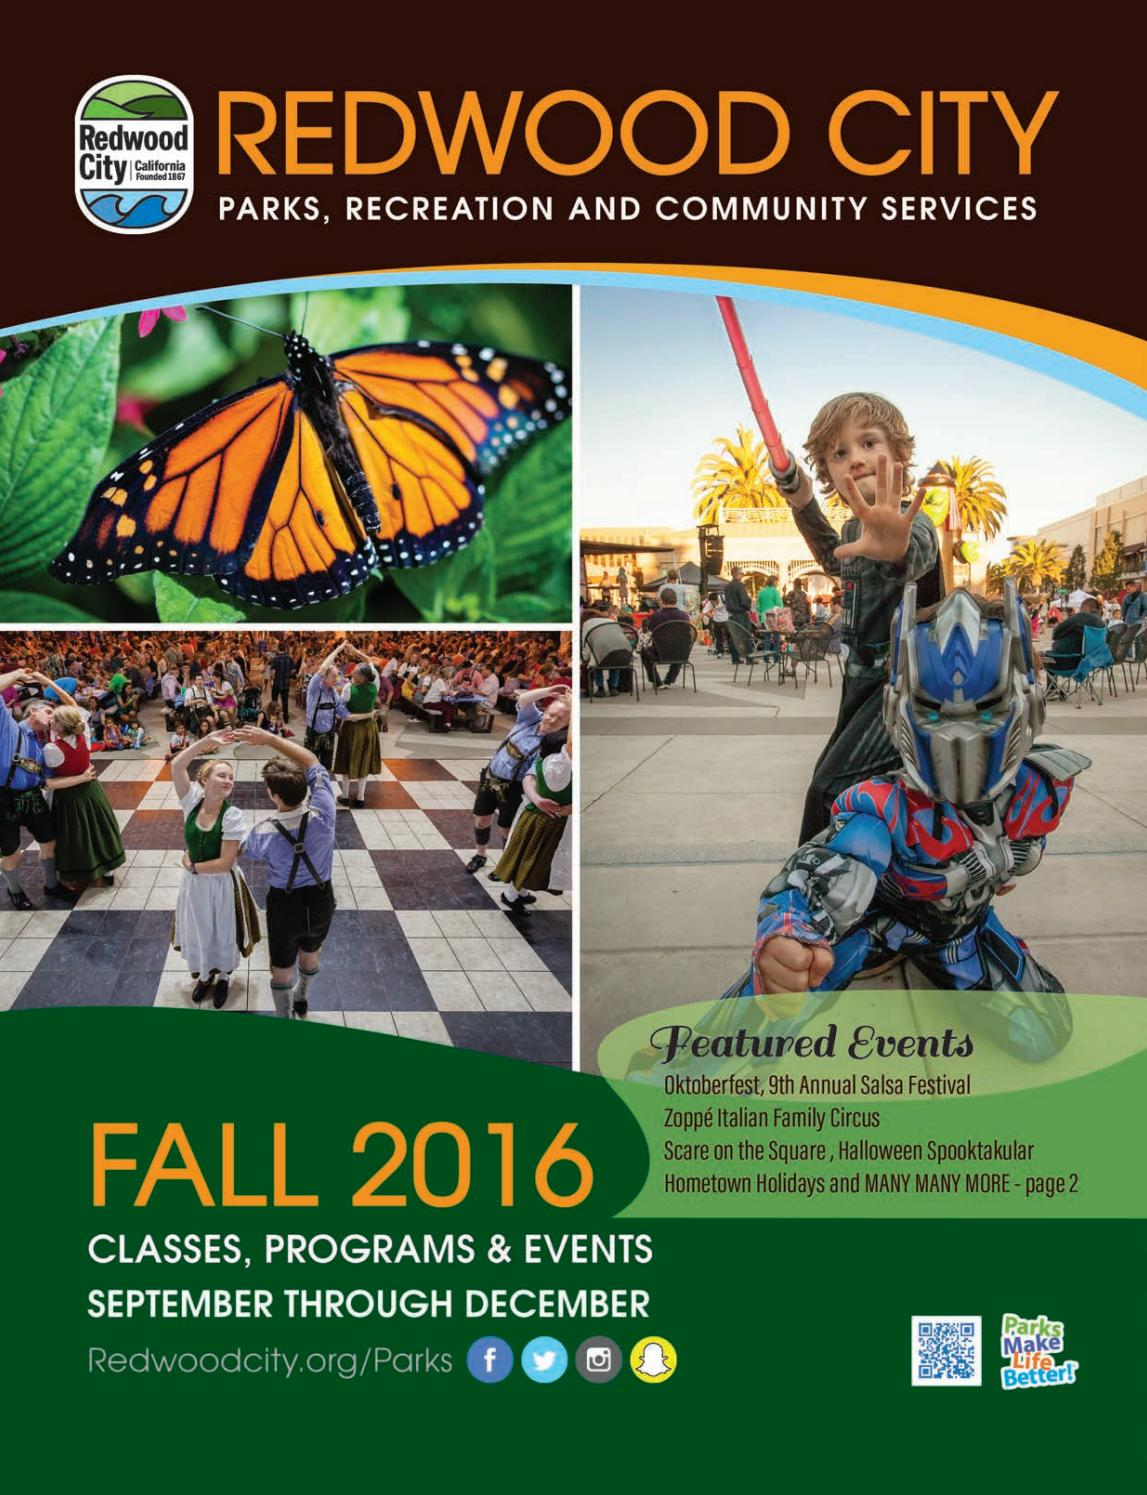 fall by redwood city parks recreation community services fall 2016 by redwood city parks recreation community services issuu